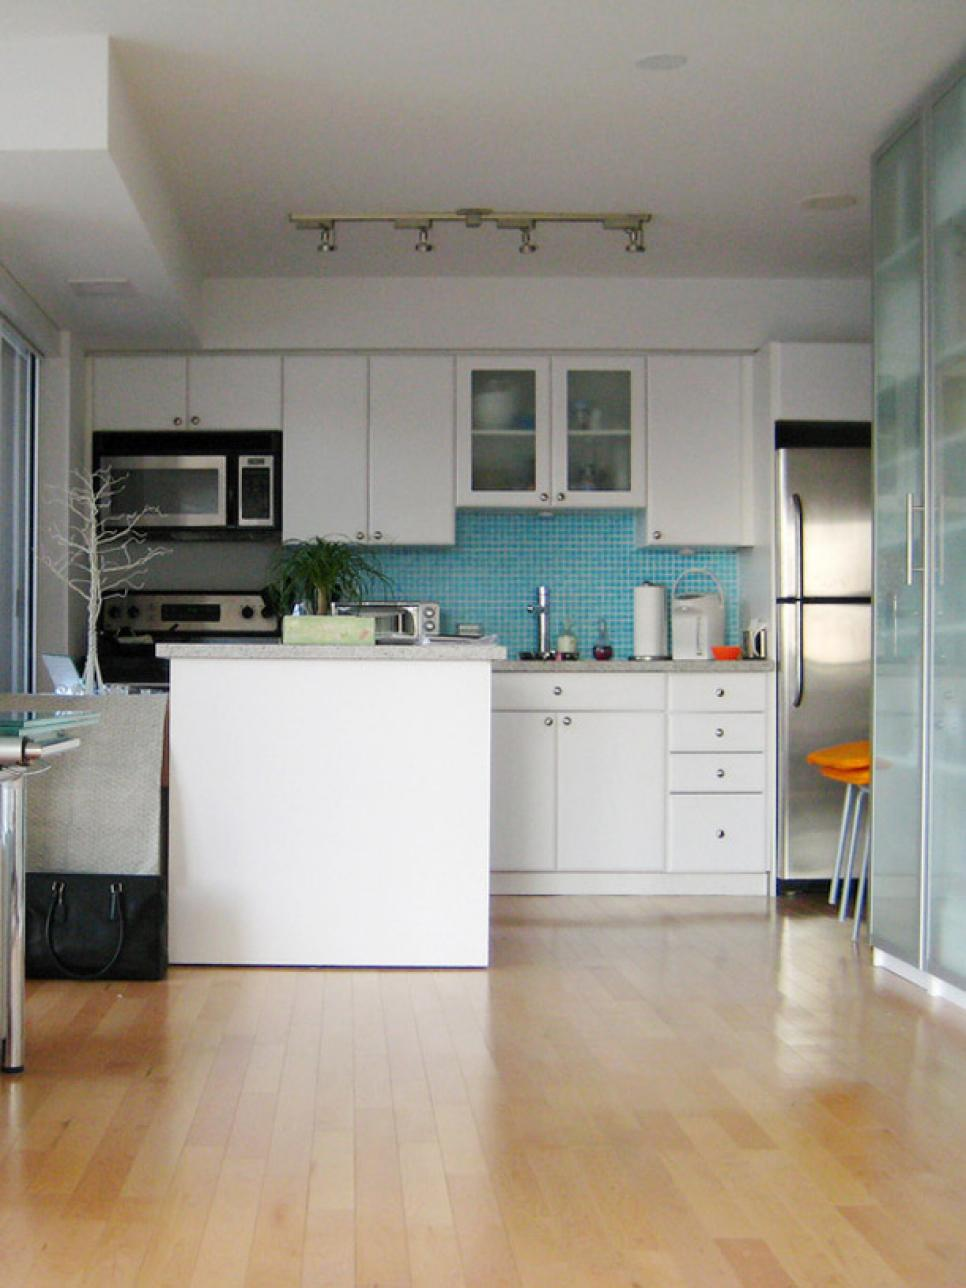 Small Kitchen Design Ideas and Solutions | HGTV on Small Kitchen Remodel Ideas  id=69632